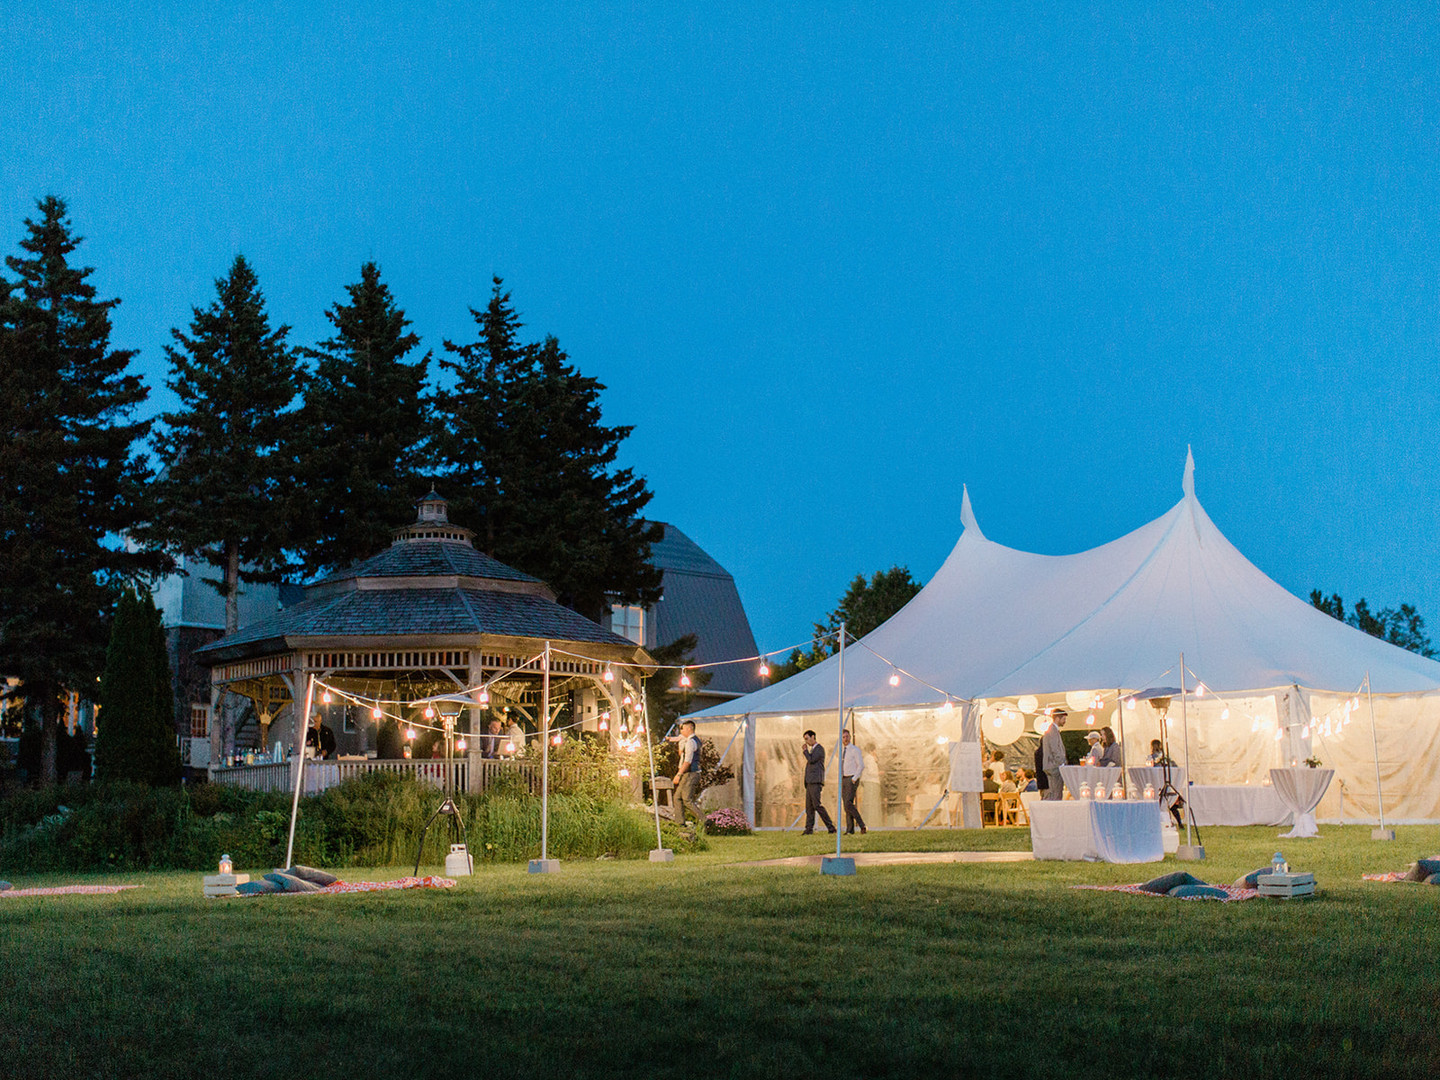 Collingwood BlueMountain Wedding Rentals